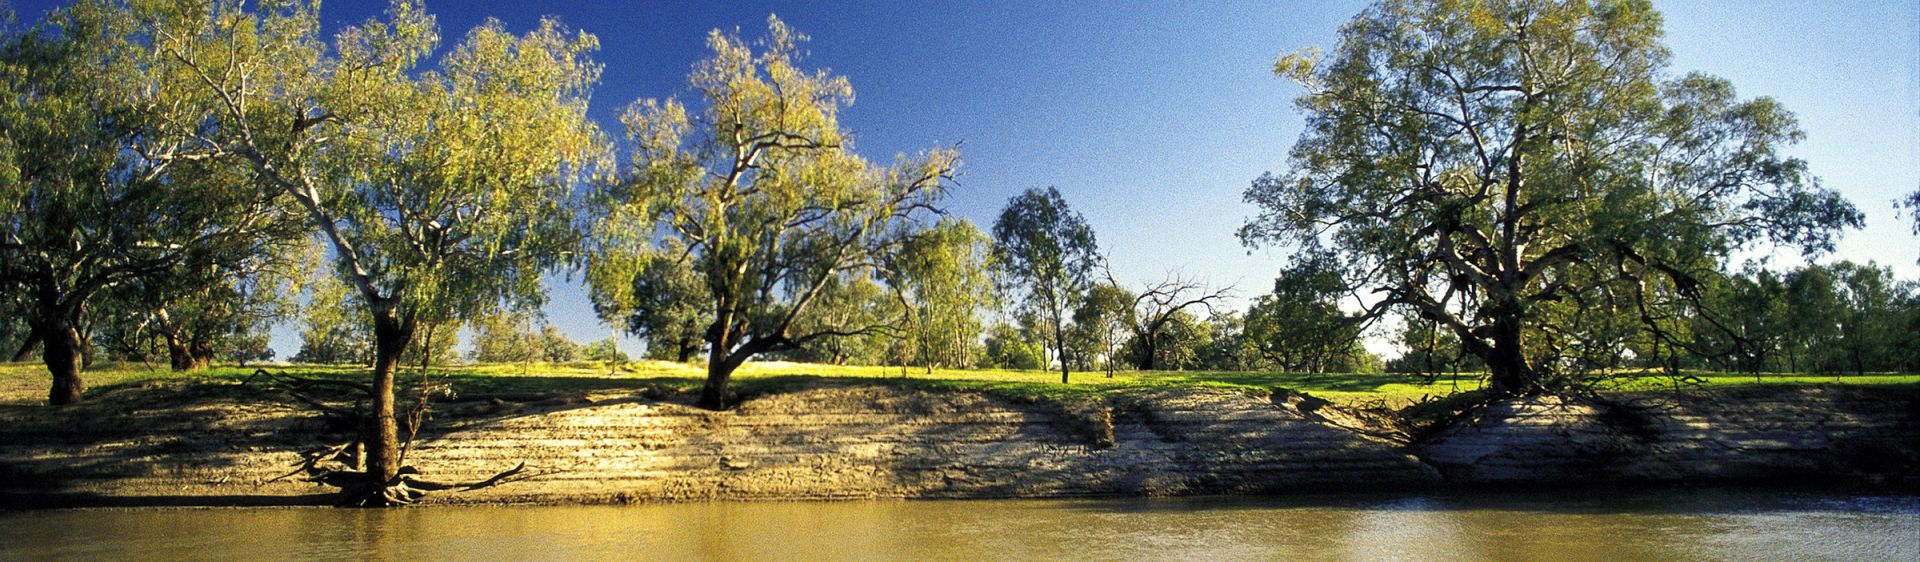 Trees lining the banks of the Darling River - Outback NSW